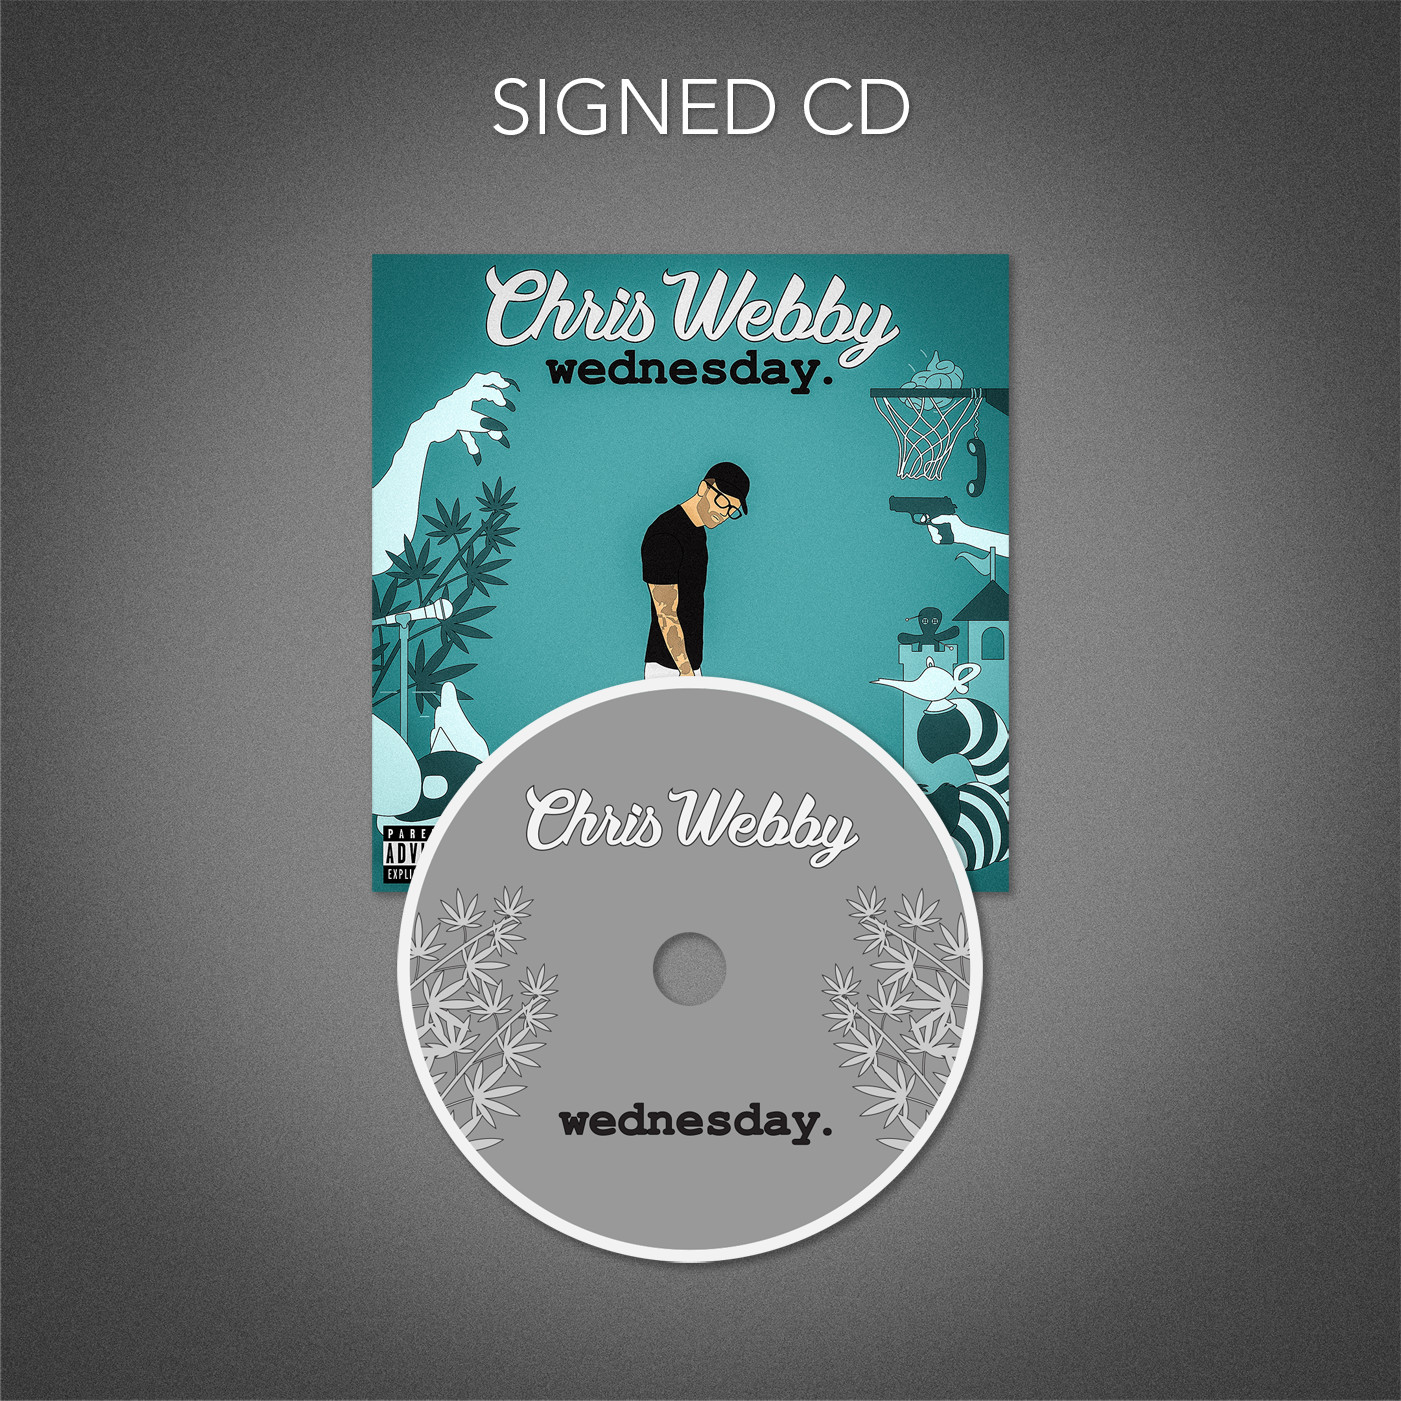 Wednesday Signed CD